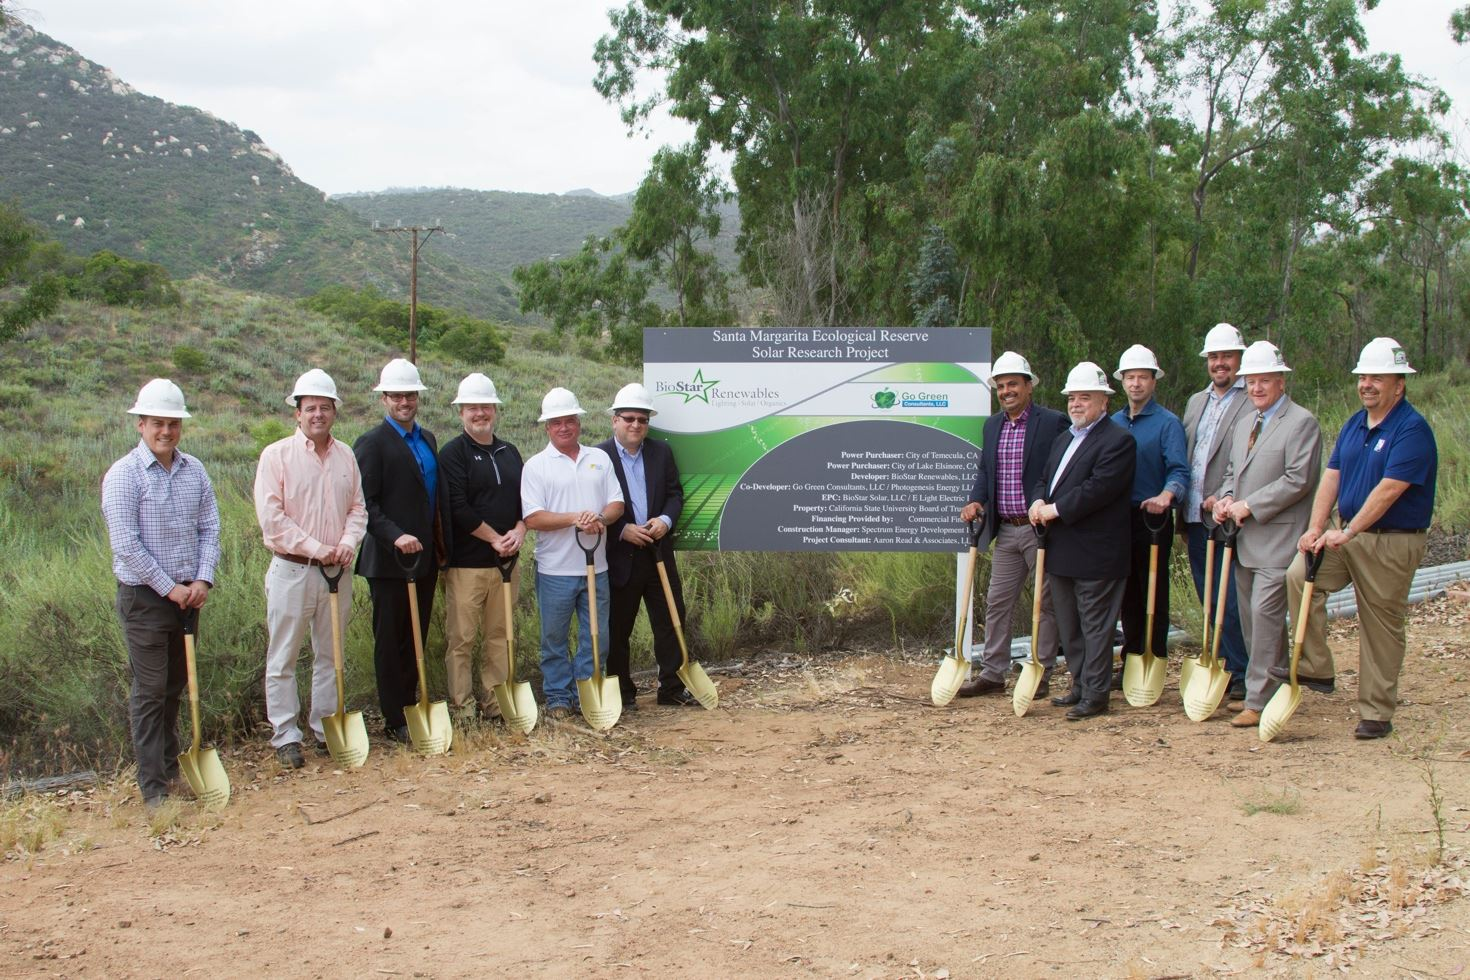 Santa Margarita Ecological Reserve Solar Research Project